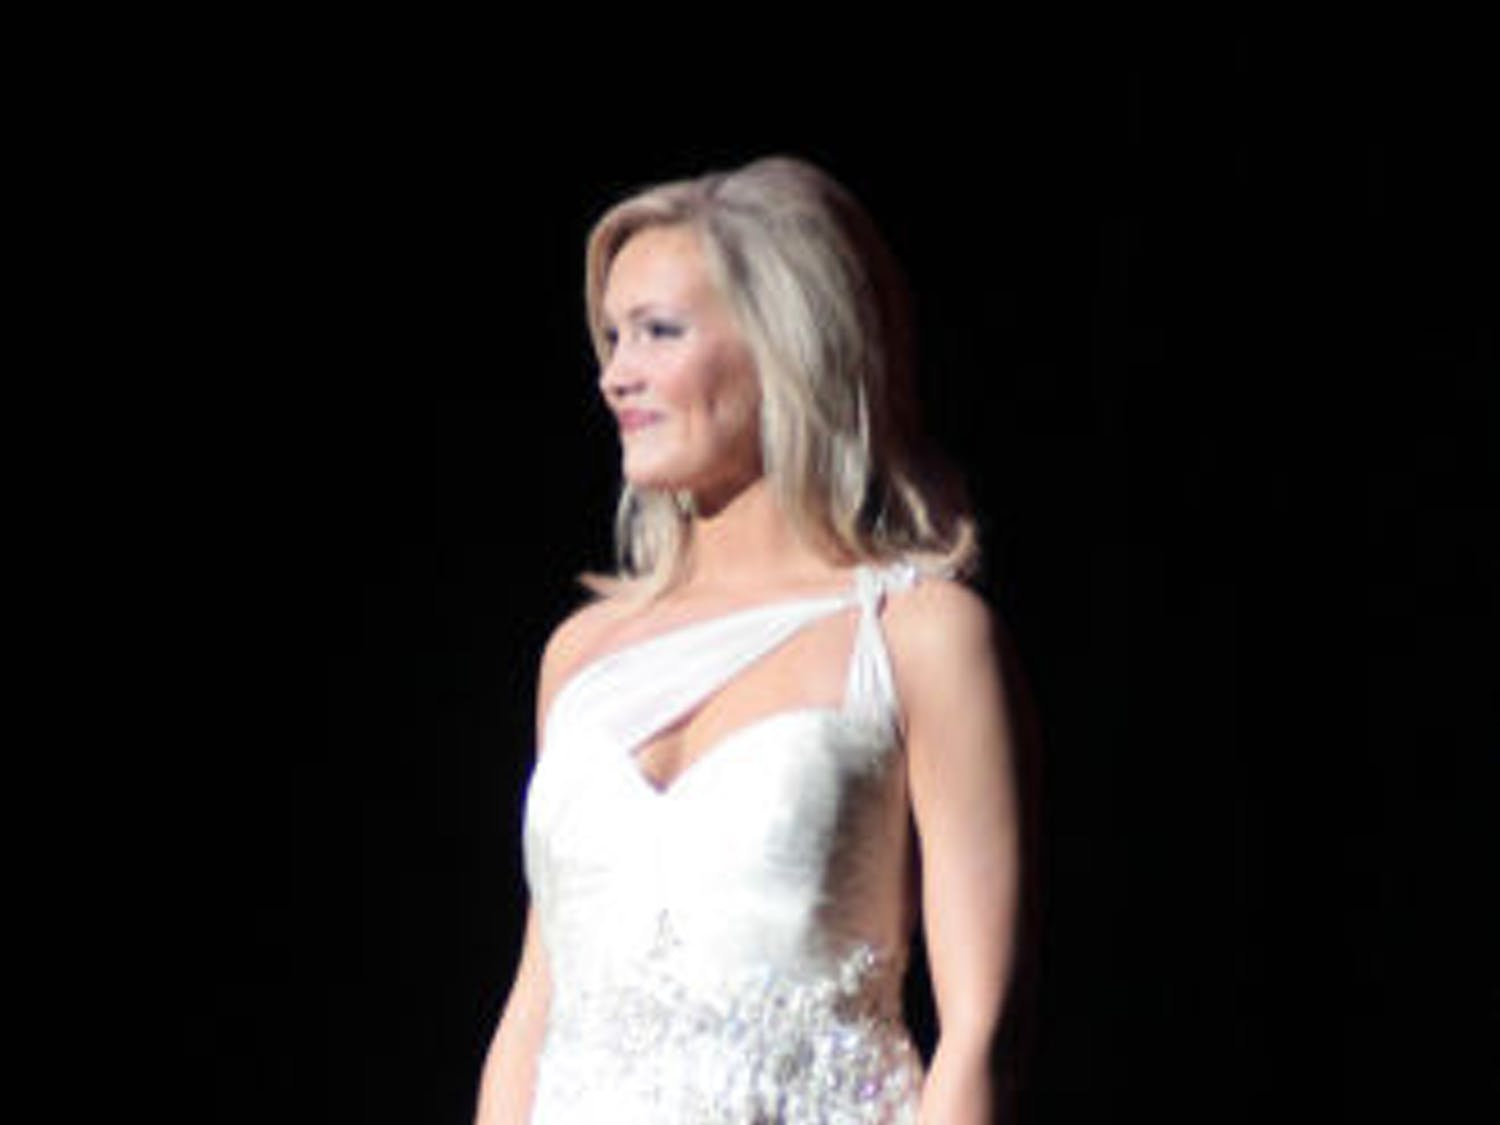 Telecommunication sophomore Elizabeth Fechtel of Alpha Delta Pi displays her choice of evening wear during Miss UF 2014 at the Curtis M. Phillips Center for the Performing Arts on Monday night.